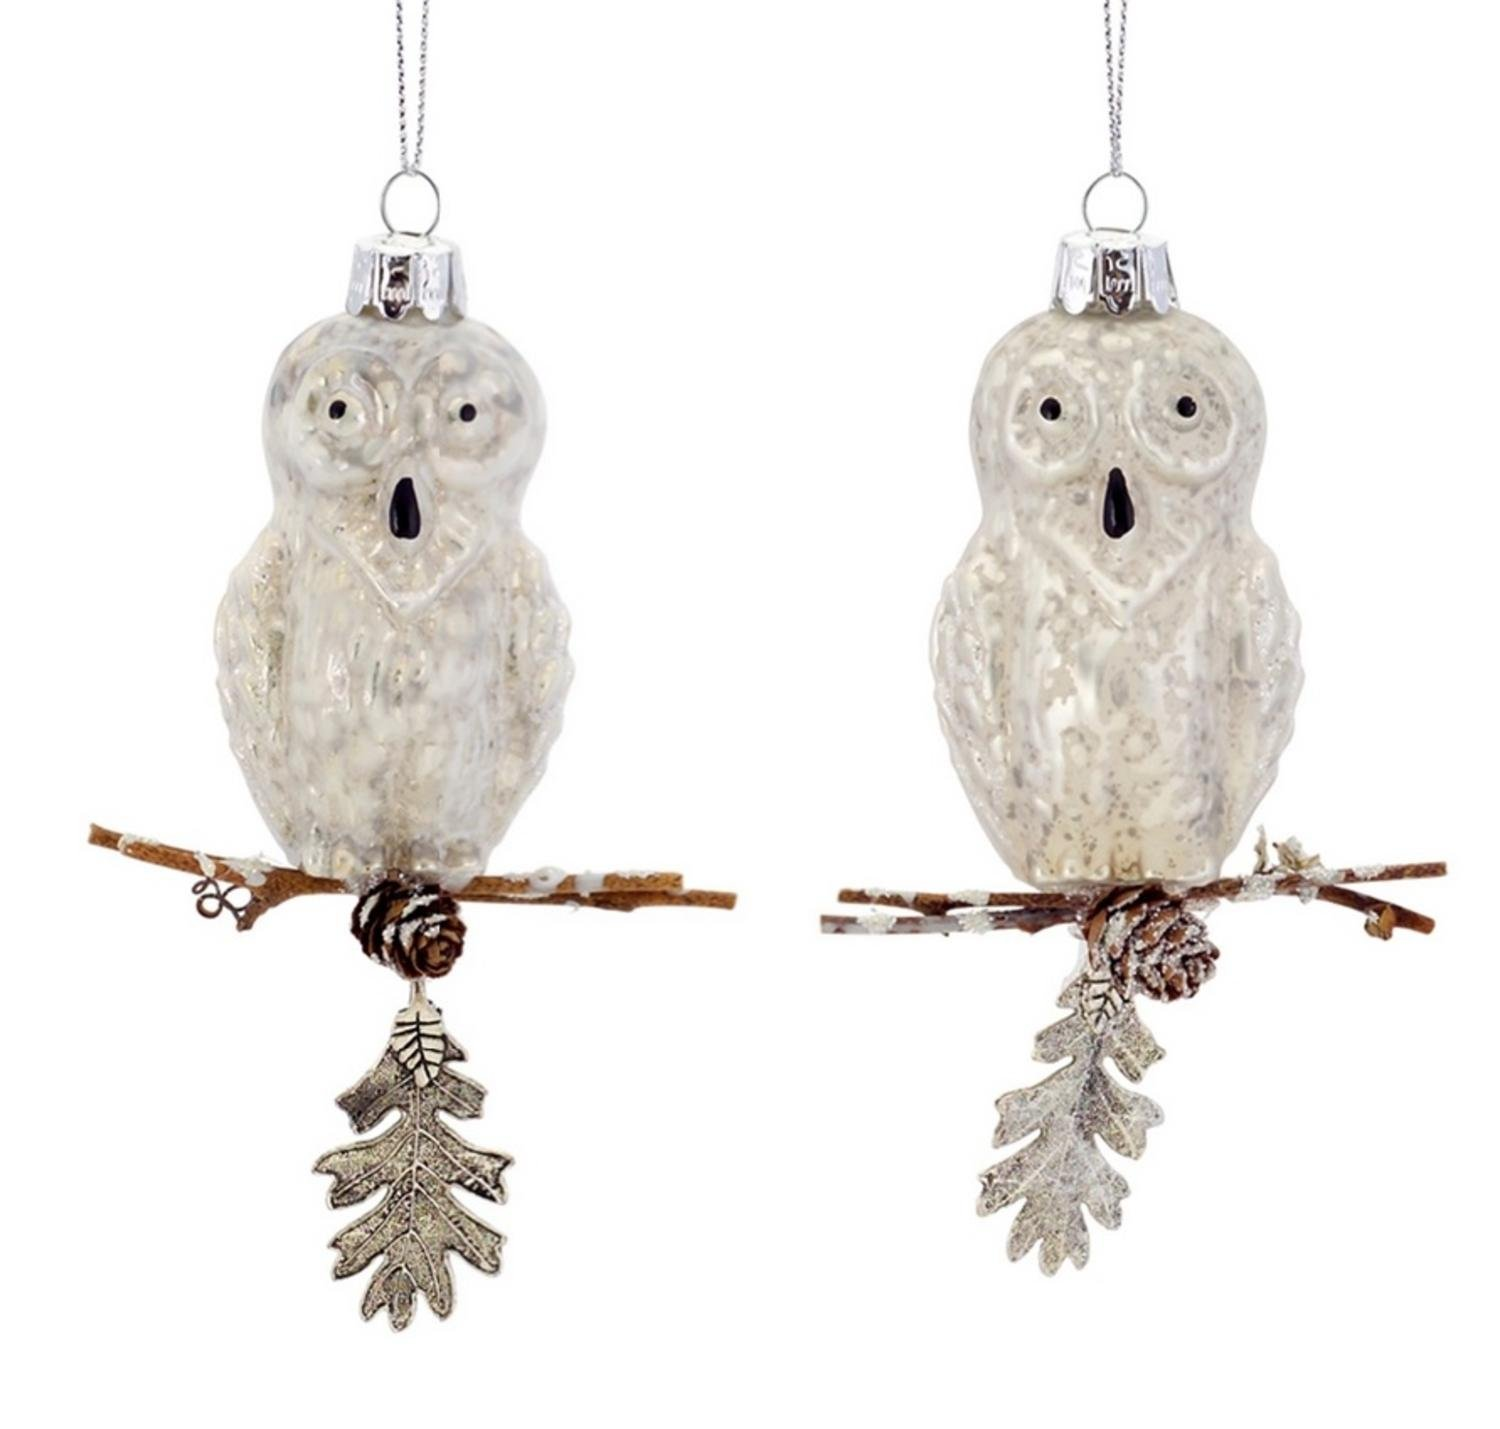 Club Pack of 12 Rustic Lodge Shiny and Matte Mercury Glass Snowy Owl Ornaments 4